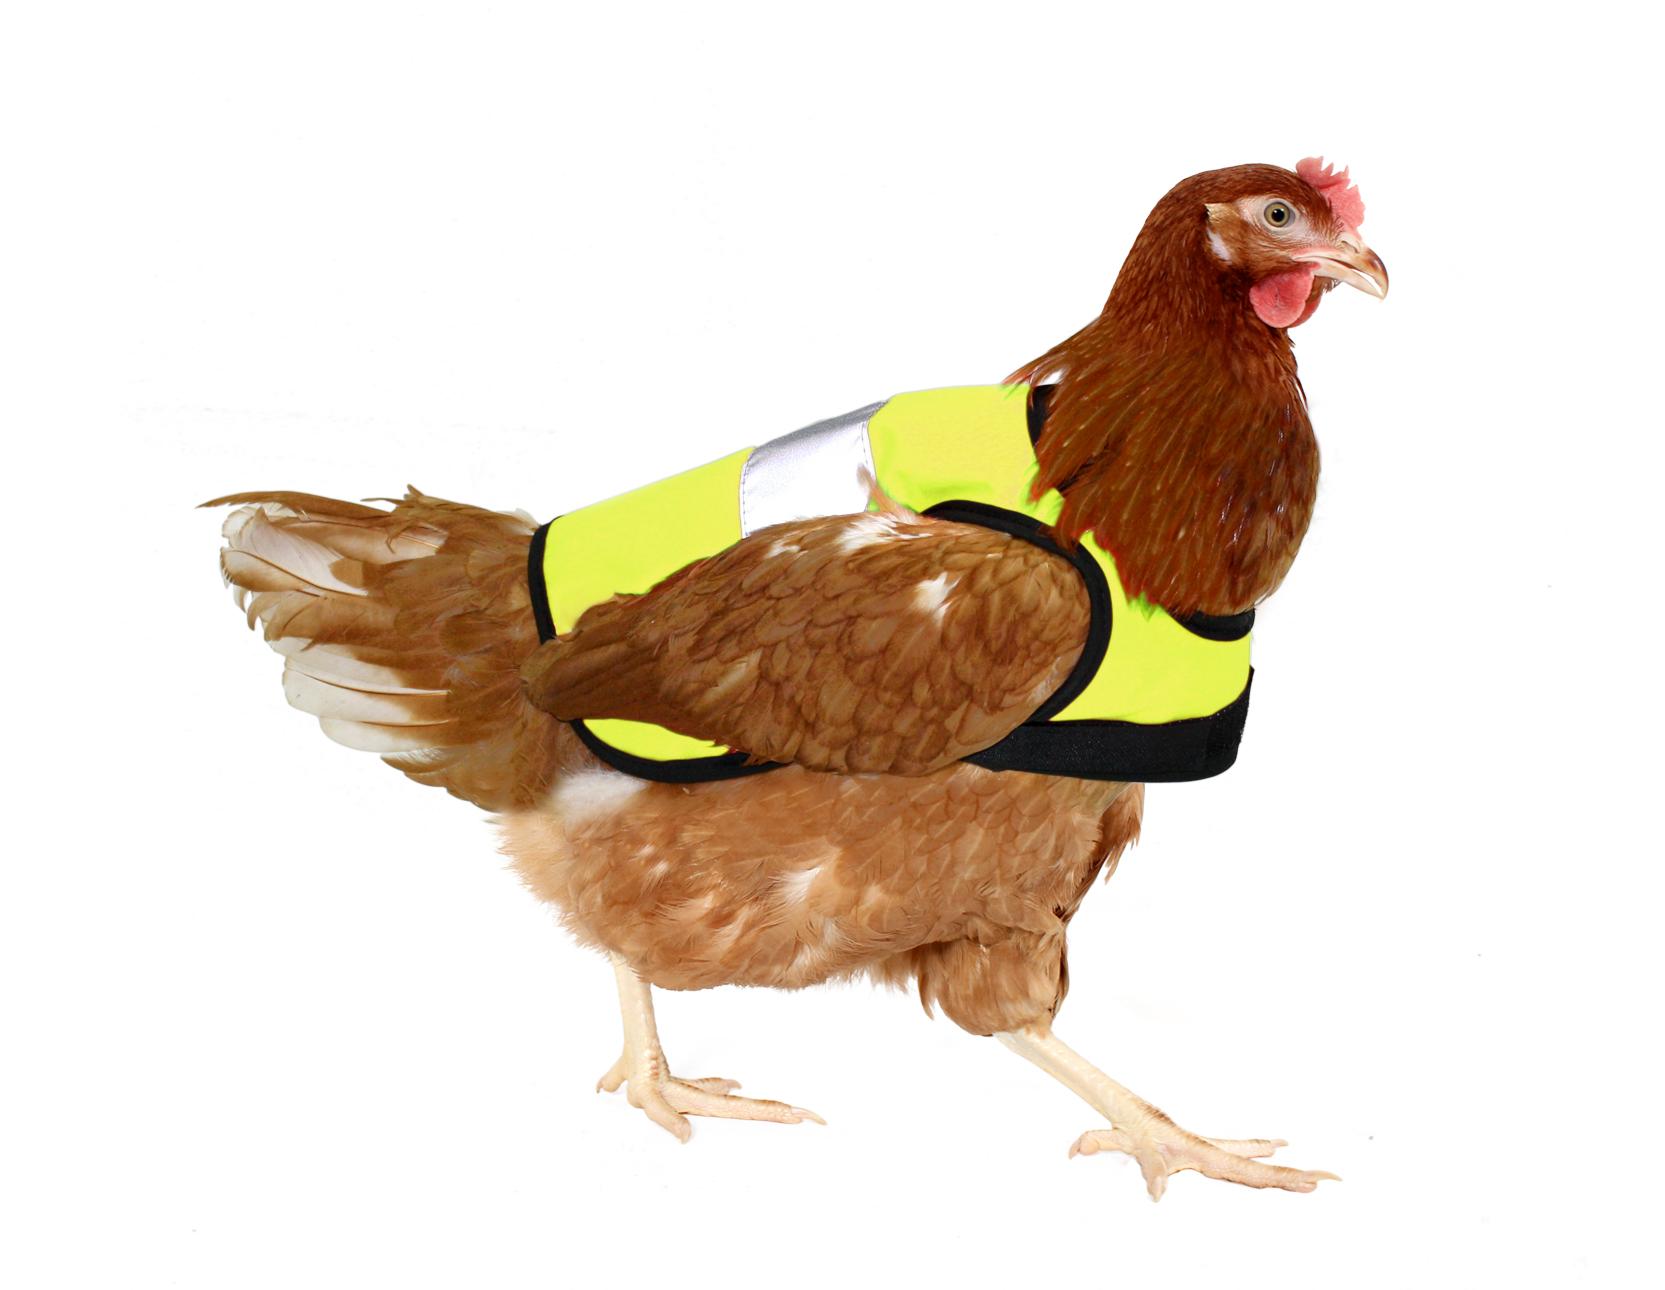 Protective Vests Help Chickens Cross the Road